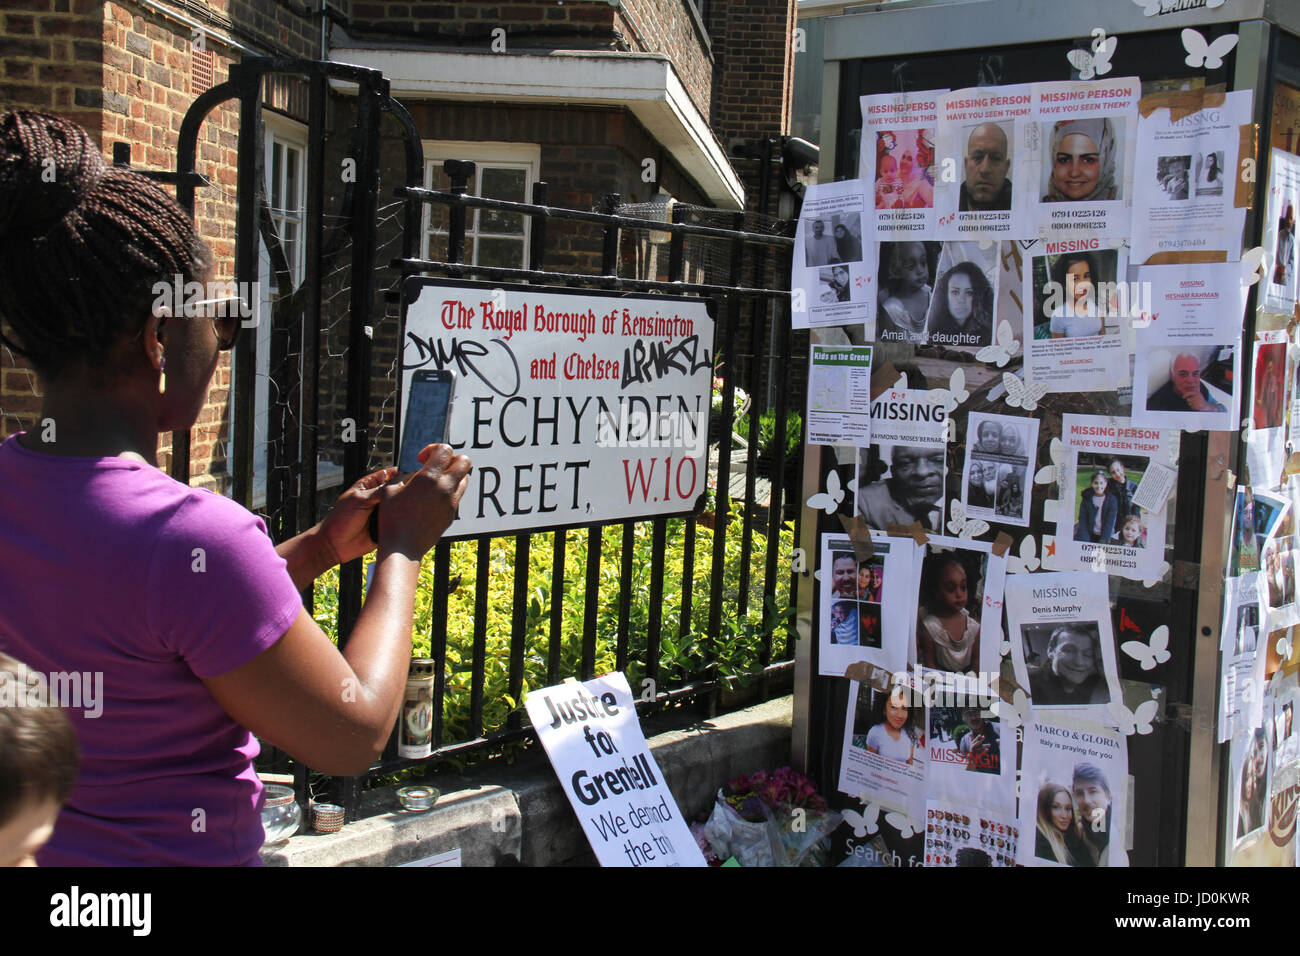 London, UK. 16th June 2017 - A woman takes photos of Missing person posters stuck on a phone booth on Blechynden - Stock Image